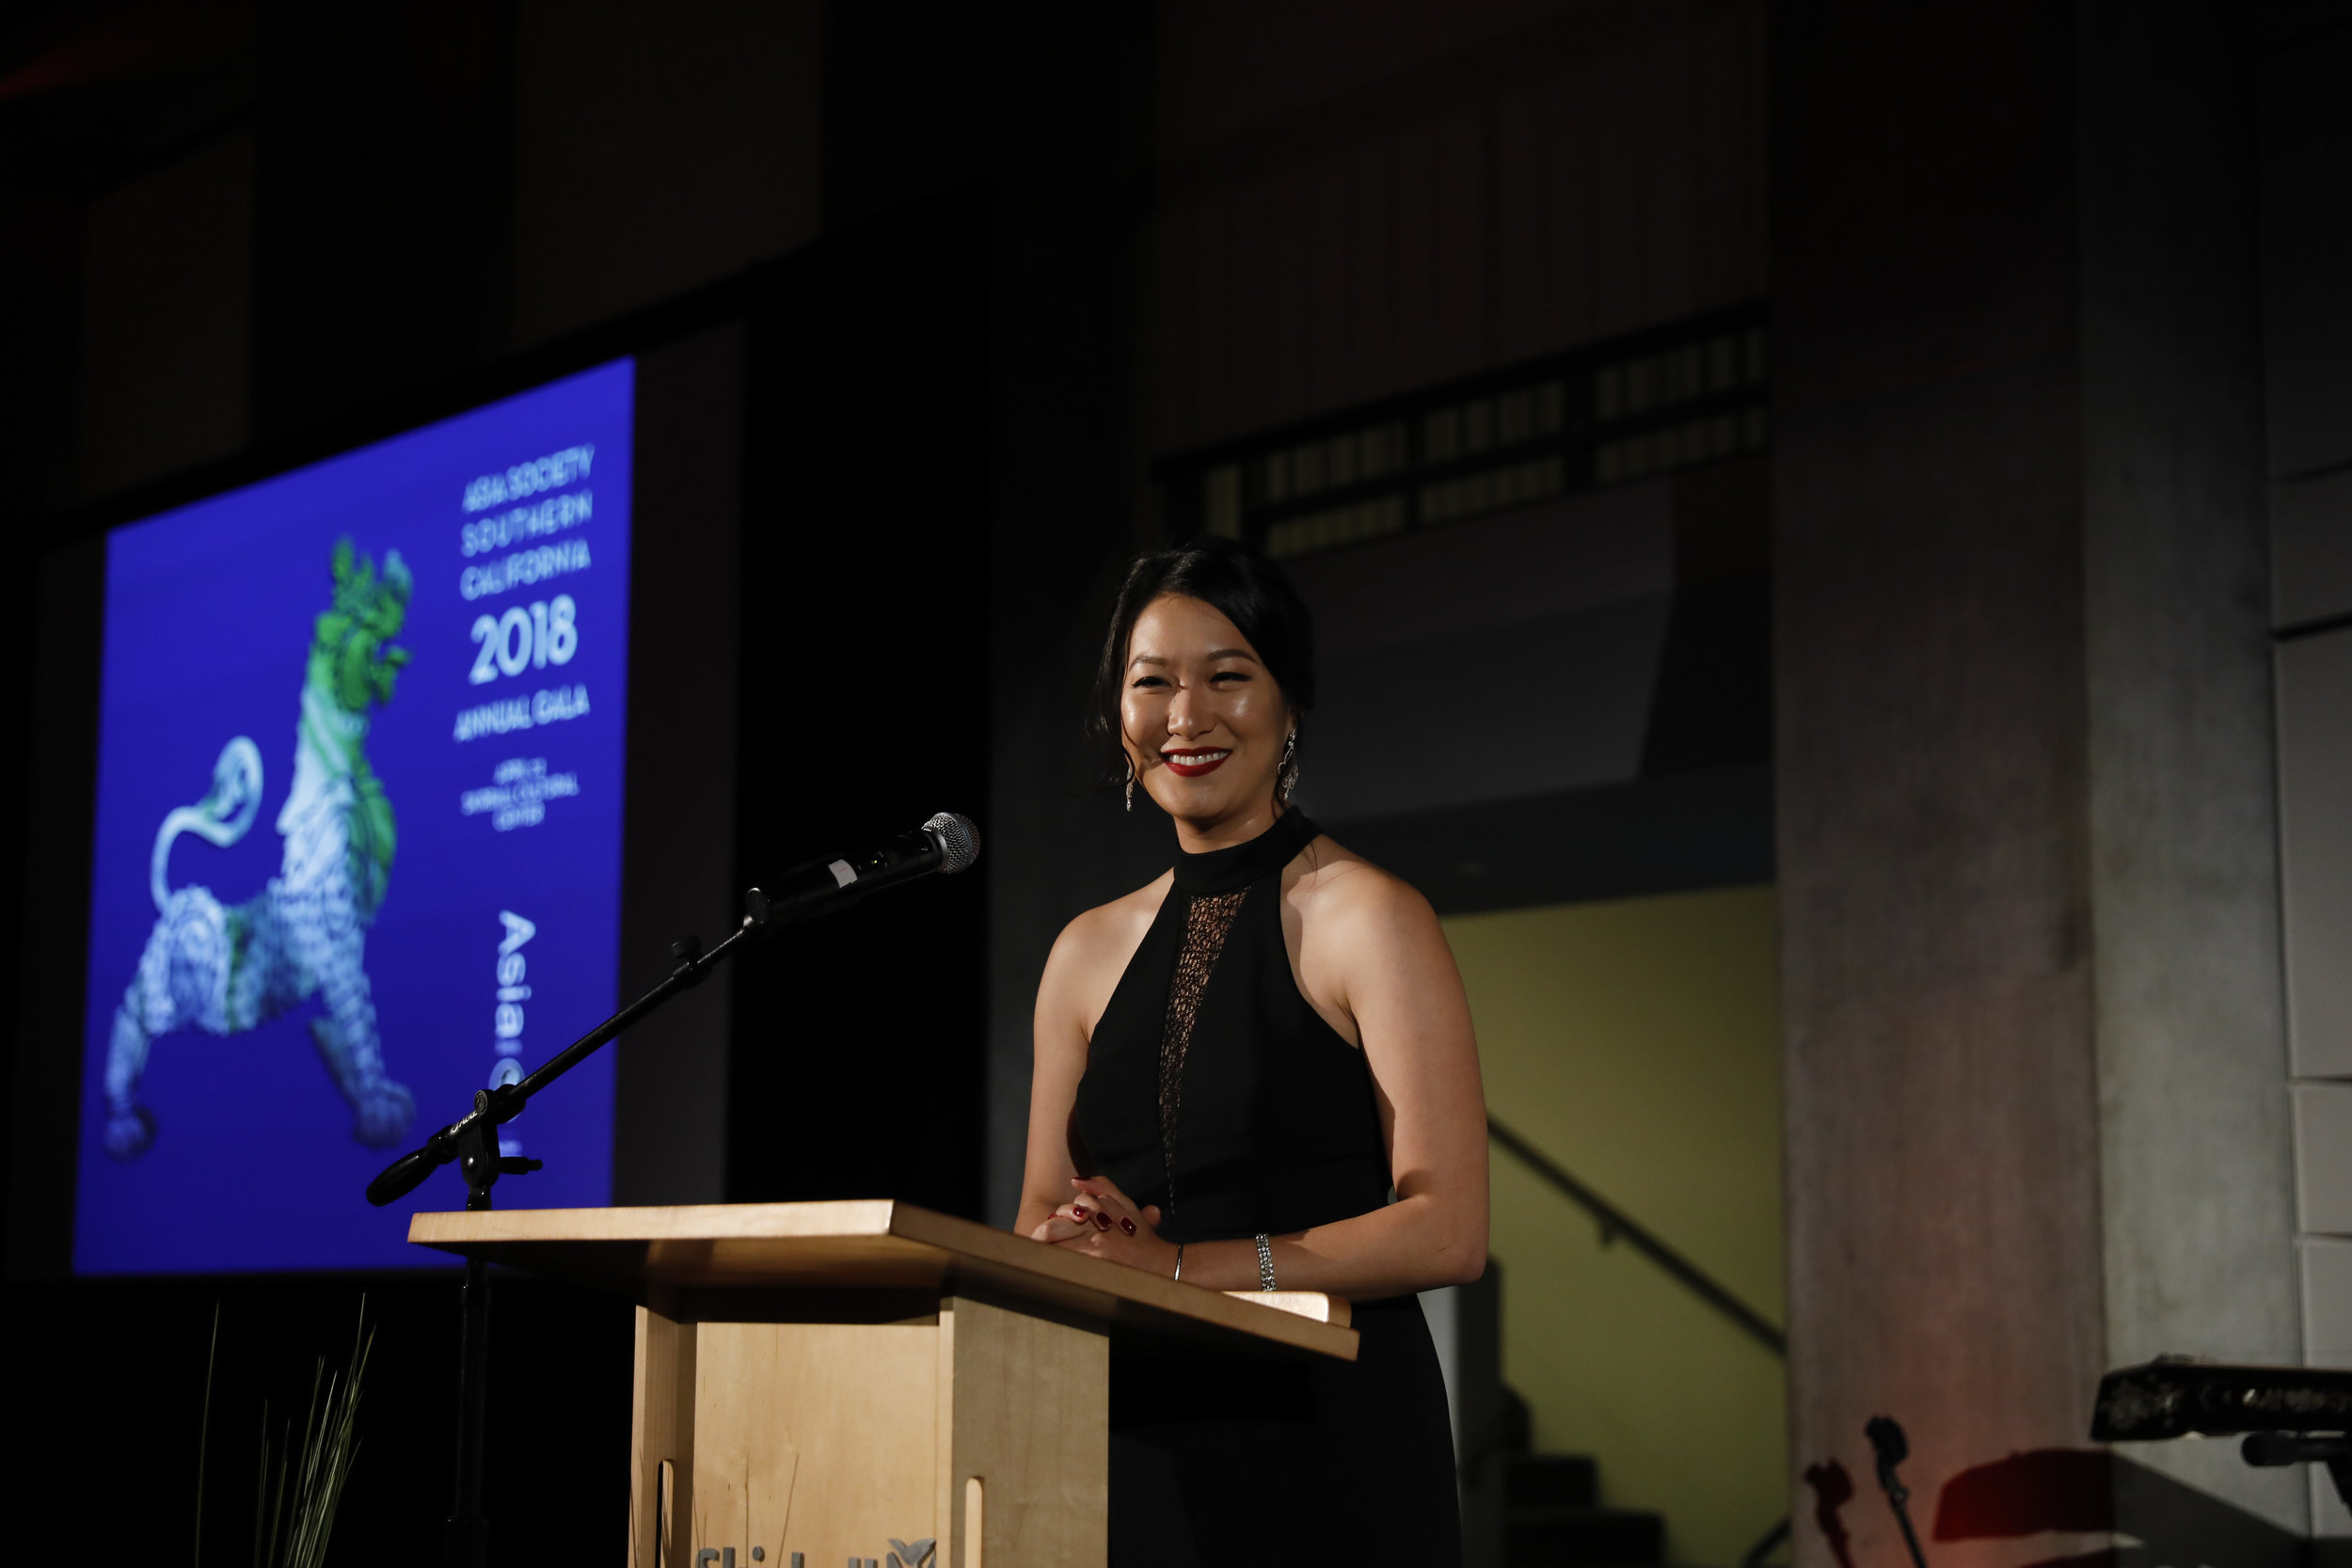 Asia Society Southern California Annual & Entertainment Galas and Summits - 2013-current, Los Angelesclient: Asia Society Southern CaliforniaIn 2013, Waking State Design was hired by Asia Society Southern California to brand their Annual Gala and Entertainment Summit and Dinner events – the only requirement to always utilize their Leogryph in expressive ways throughout all communications.